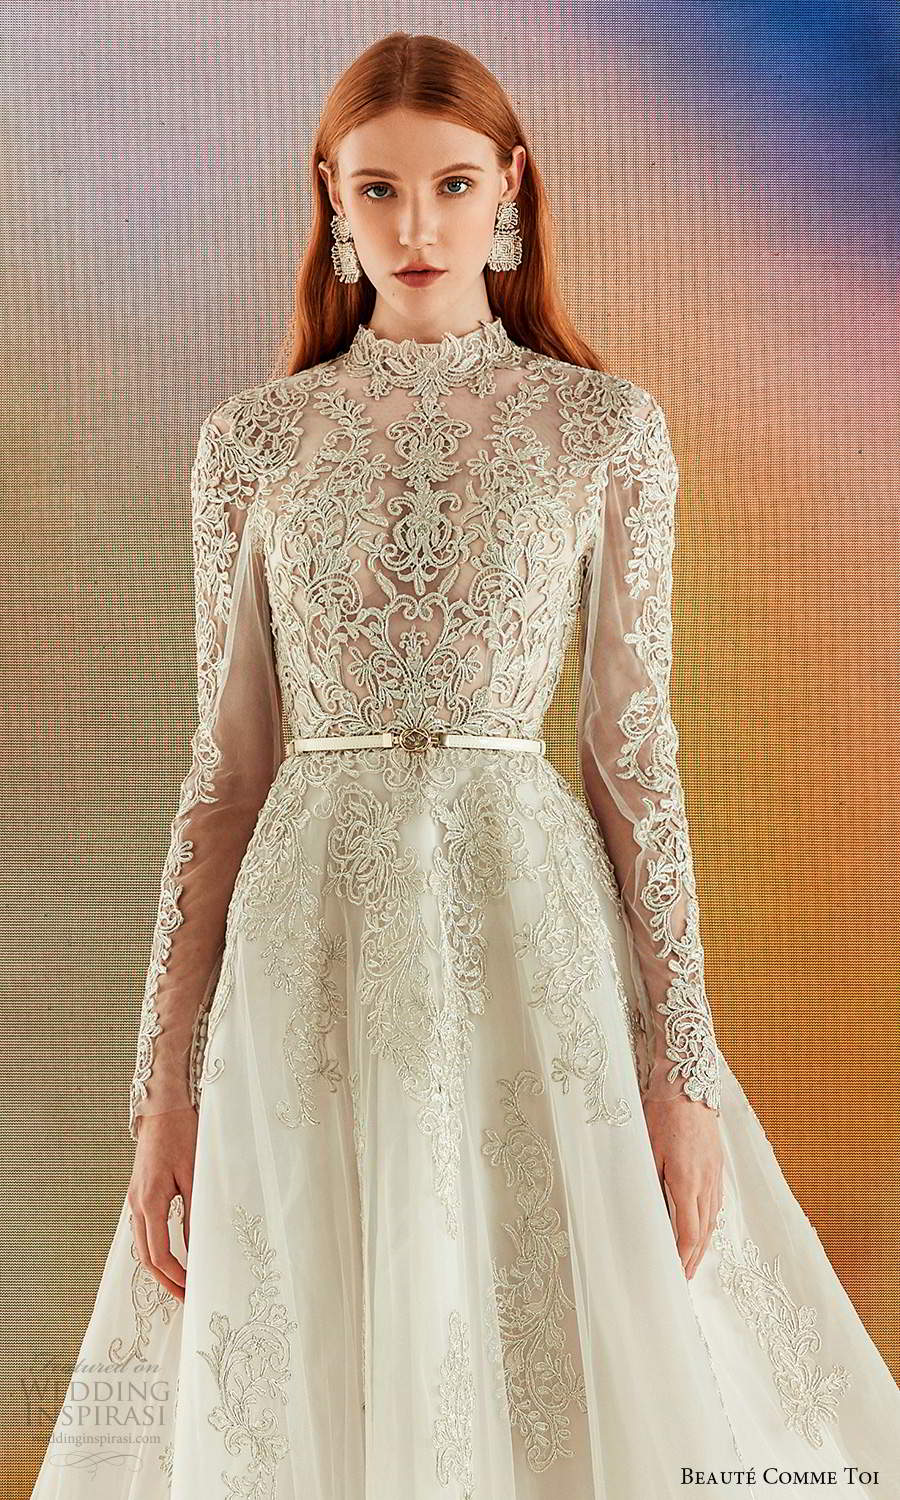 beaute comme toi fall 2021 bridal long sleeves high neckline fully embellished a line ball gown wedding dress chapel train gold keyhole back (2) zv